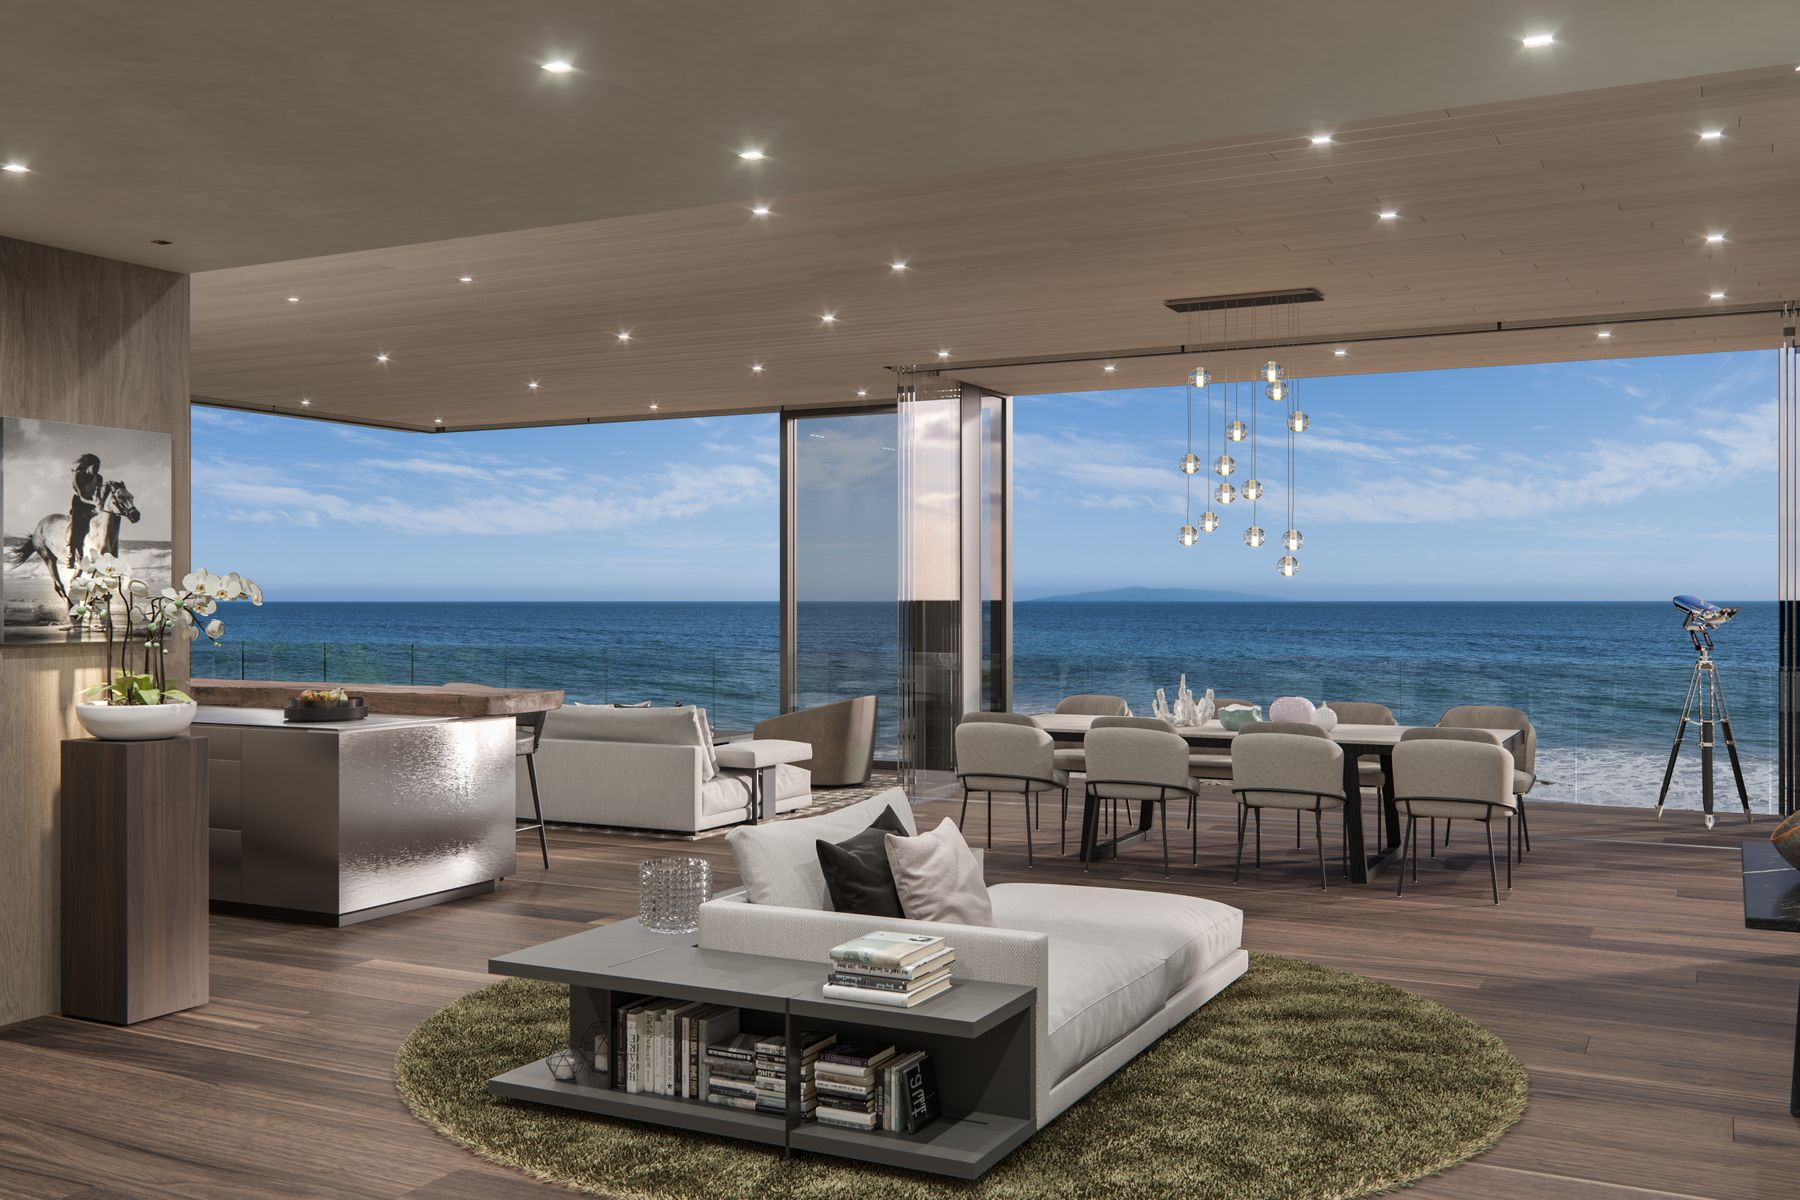 Single Family Homes for Active at Brand New Malibu Oceanfront 24300 Malibu Road Malibu, California 90265 United States